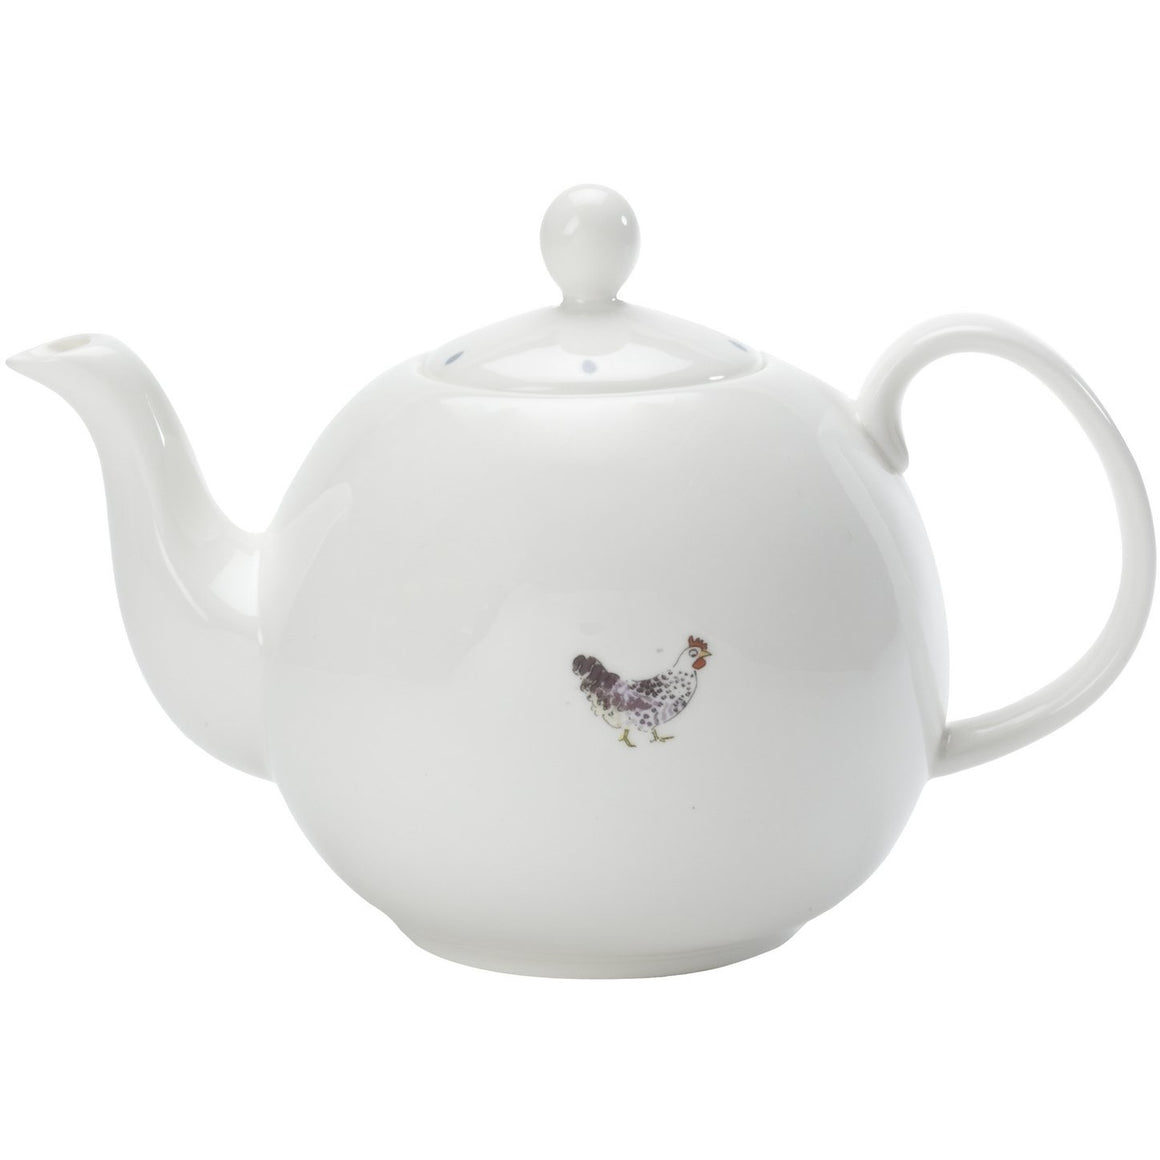 Sophie Allport Small Chicken Teapot